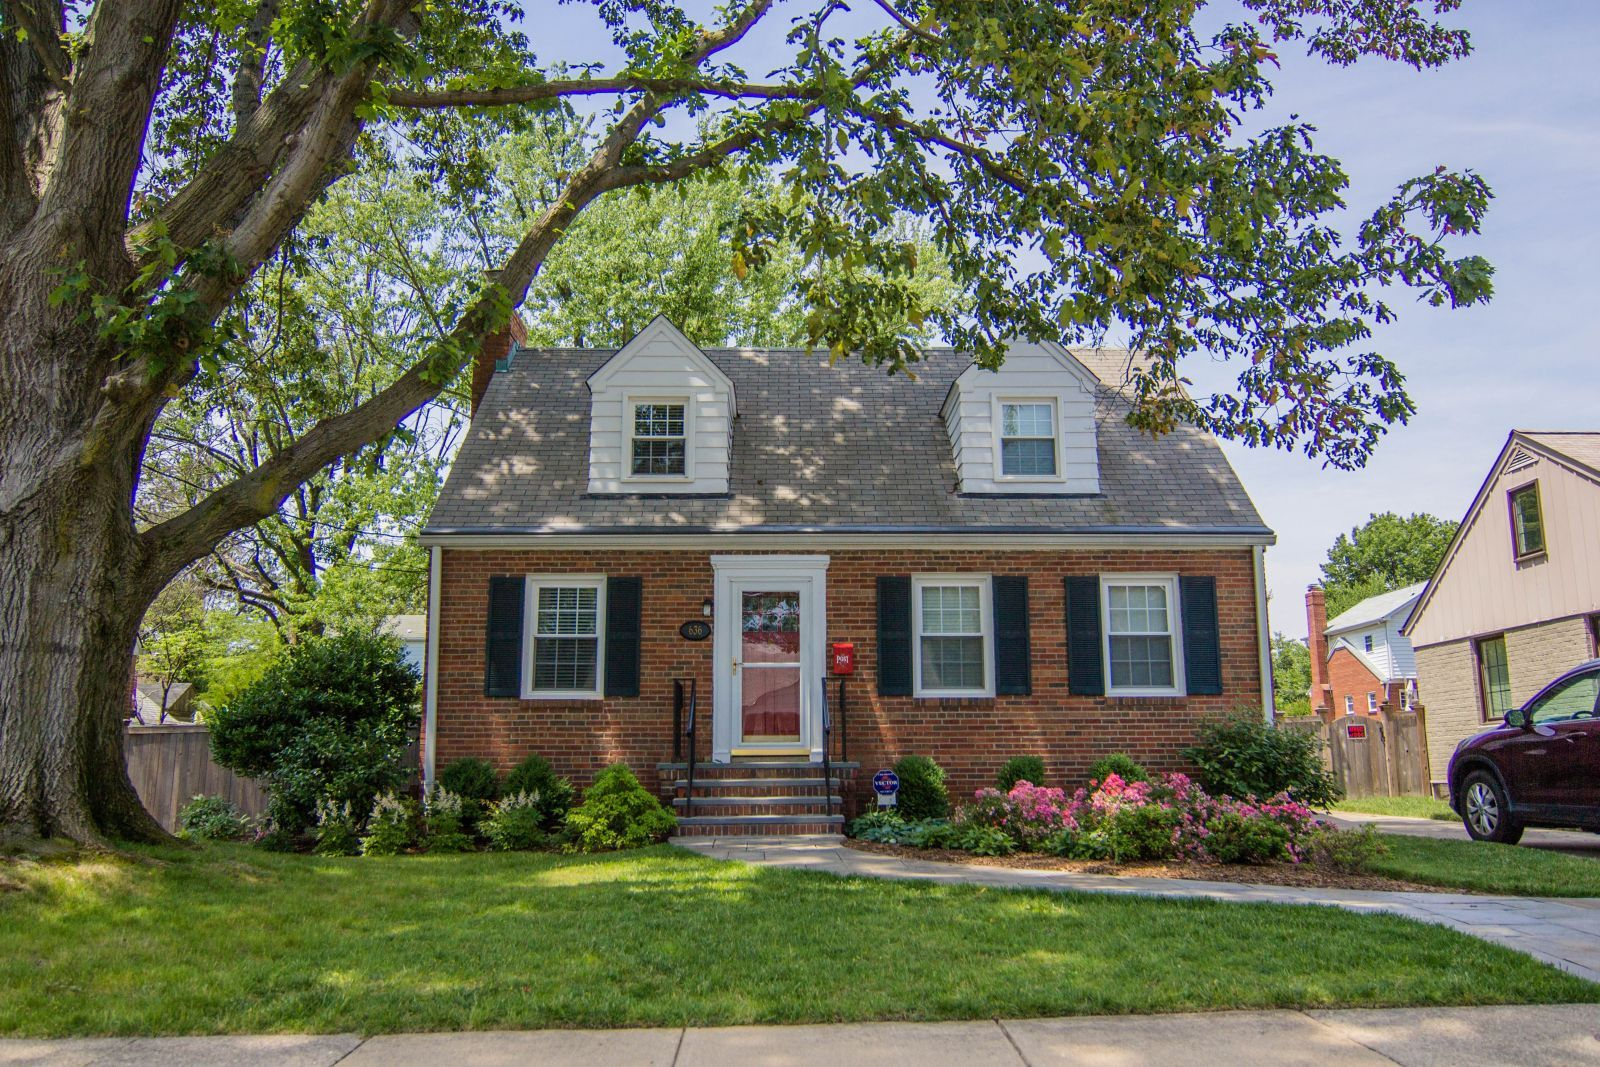 Red Brick Cape Cod Houses Google Search Exterior House